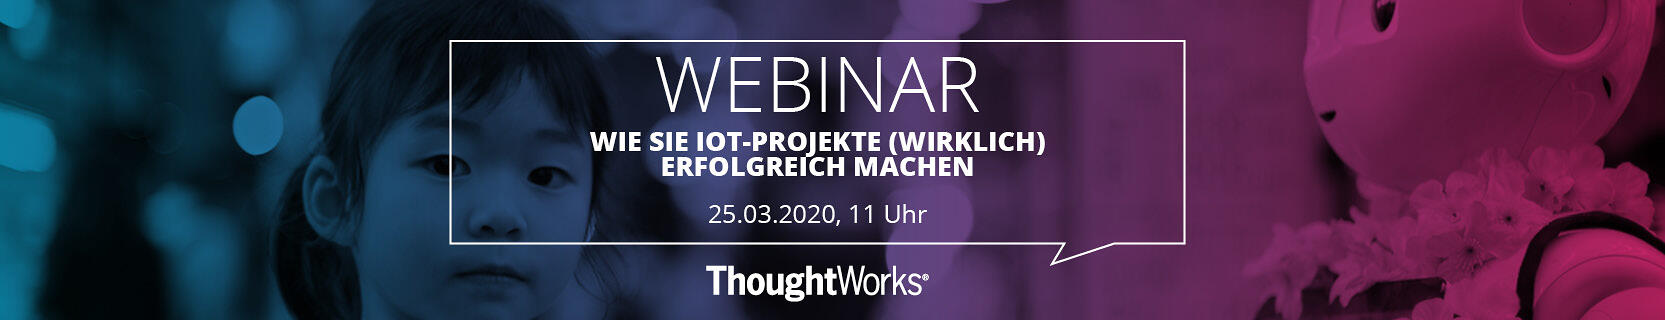 Webinar Internet of things